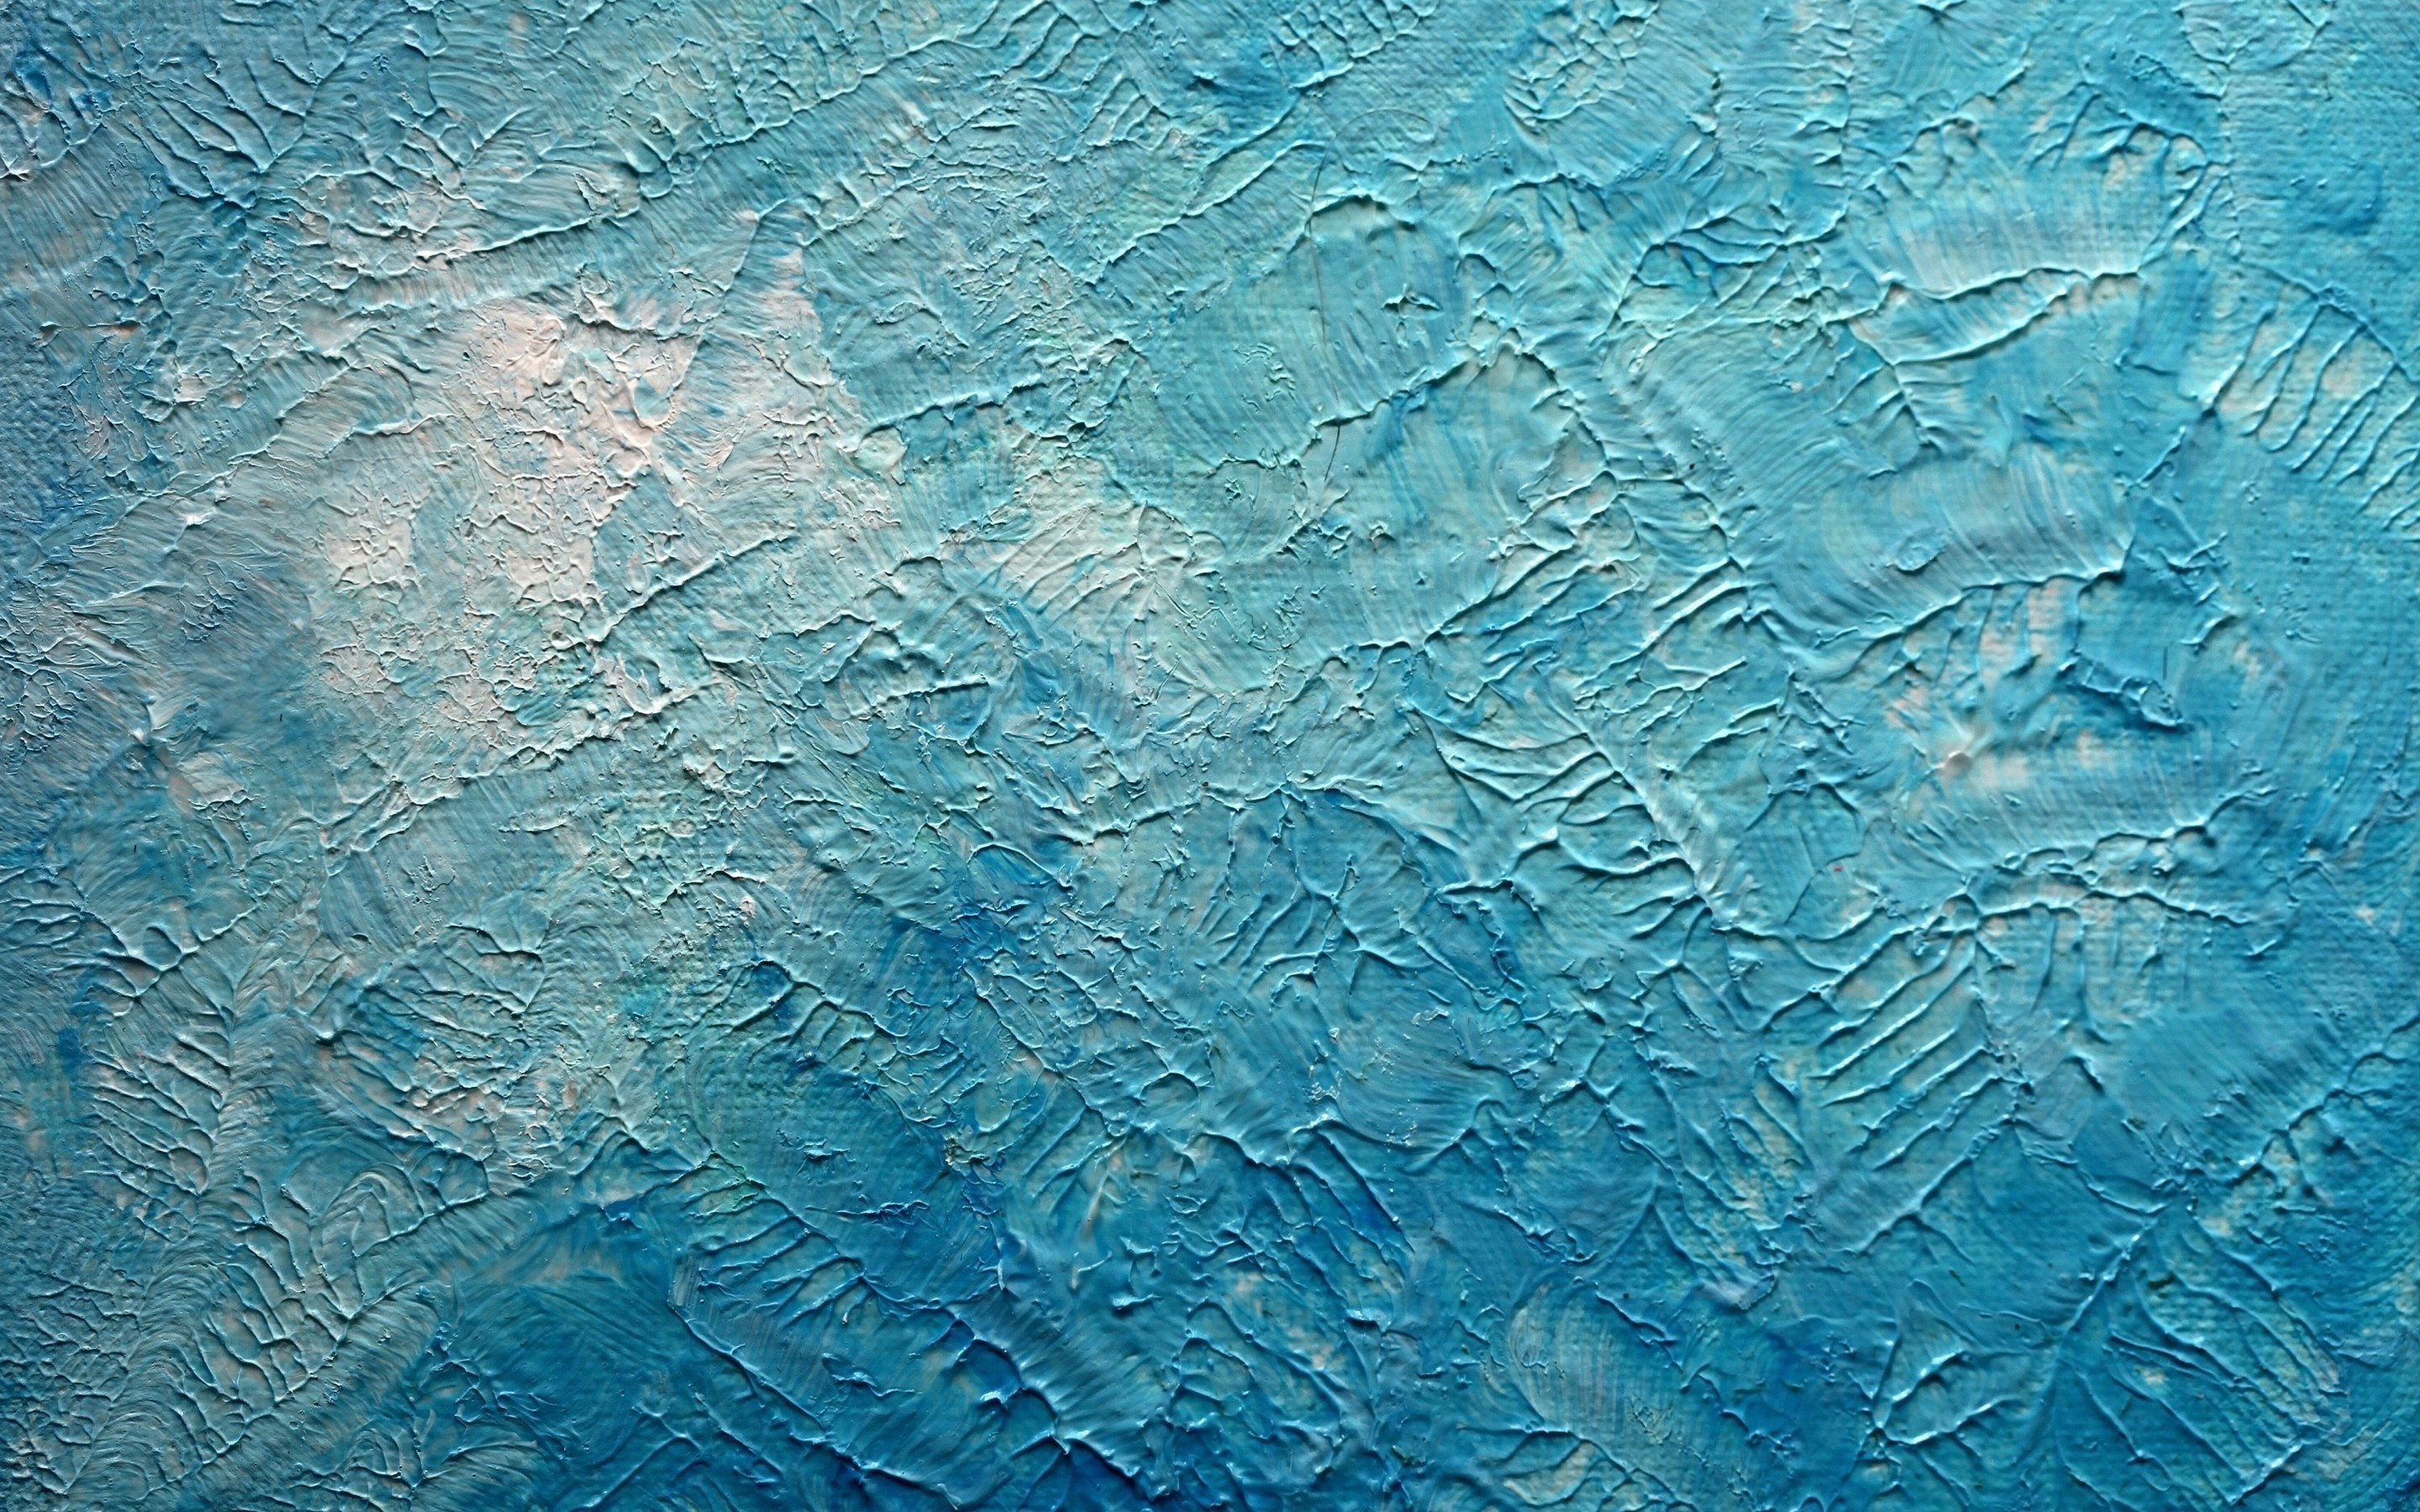 hd texture backgrounds 76 images